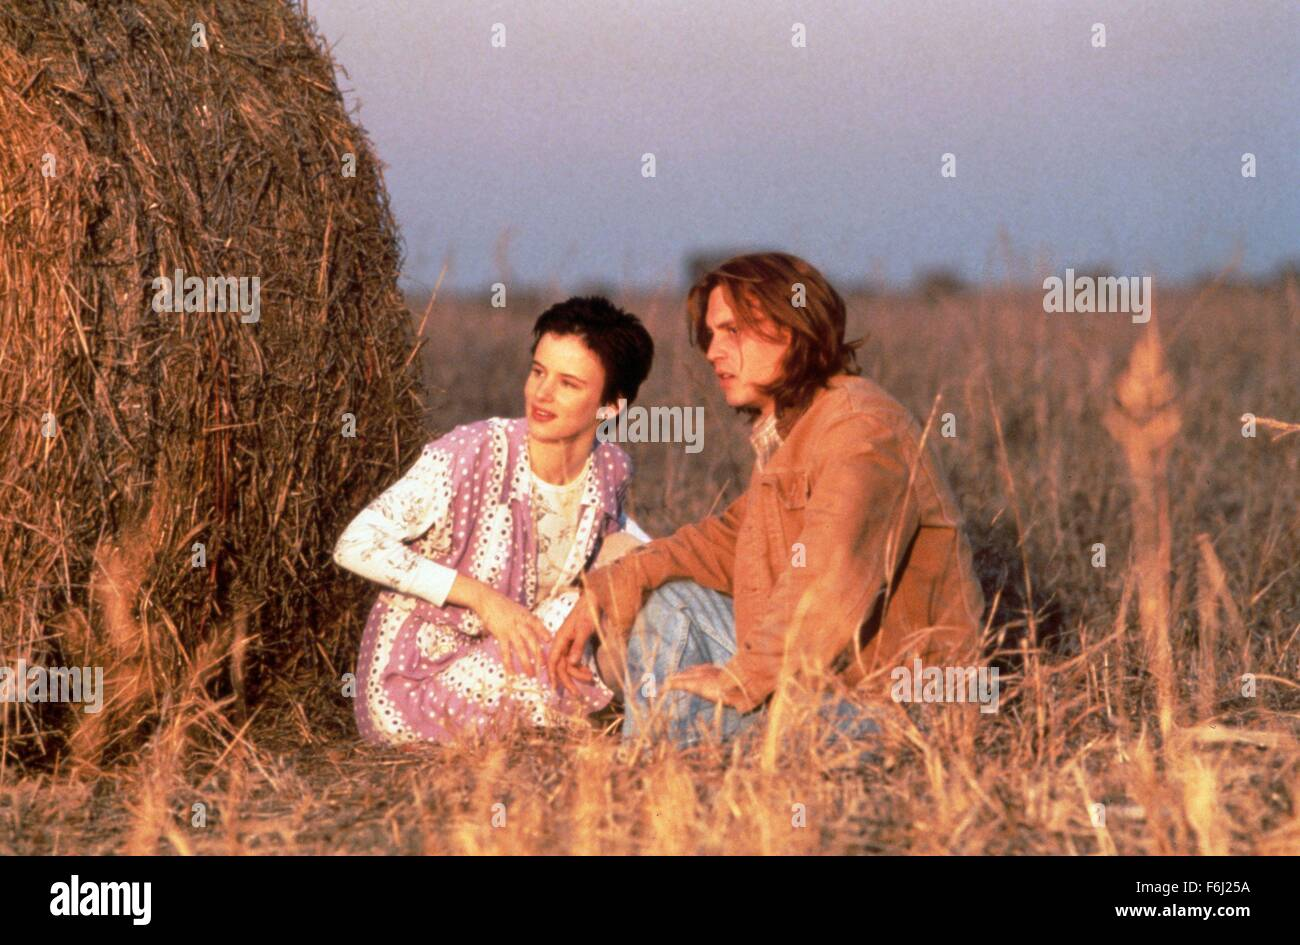 an analysis of the movie what s eating gilbert grape directed by lasse hallstrom Lasse hallstrom movie news according to the hollywood reporter , acclaimed swedish director lasse hallstrom ( the hundred-foot journey , the cider house rules , what's eating gilbert grape ) is onboard to direct walt disney pictures' new live-action version of the nutcracker.